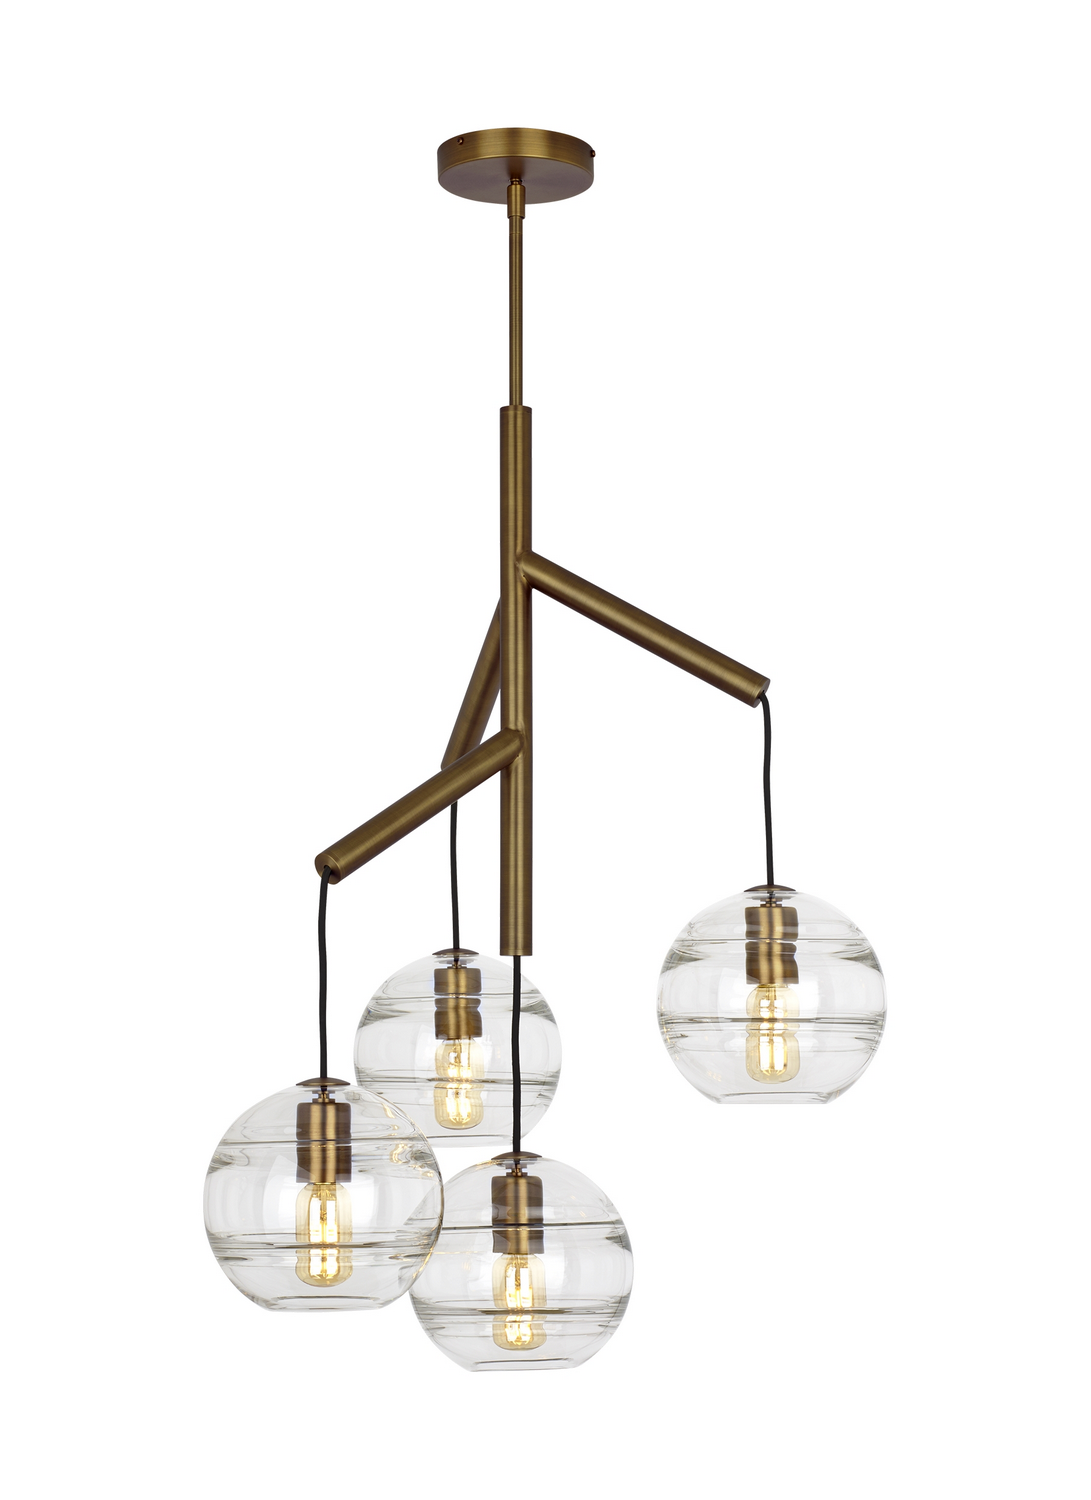 Chandelier from the Sedona collection by Tech Lighting 700SDNMPR1CR